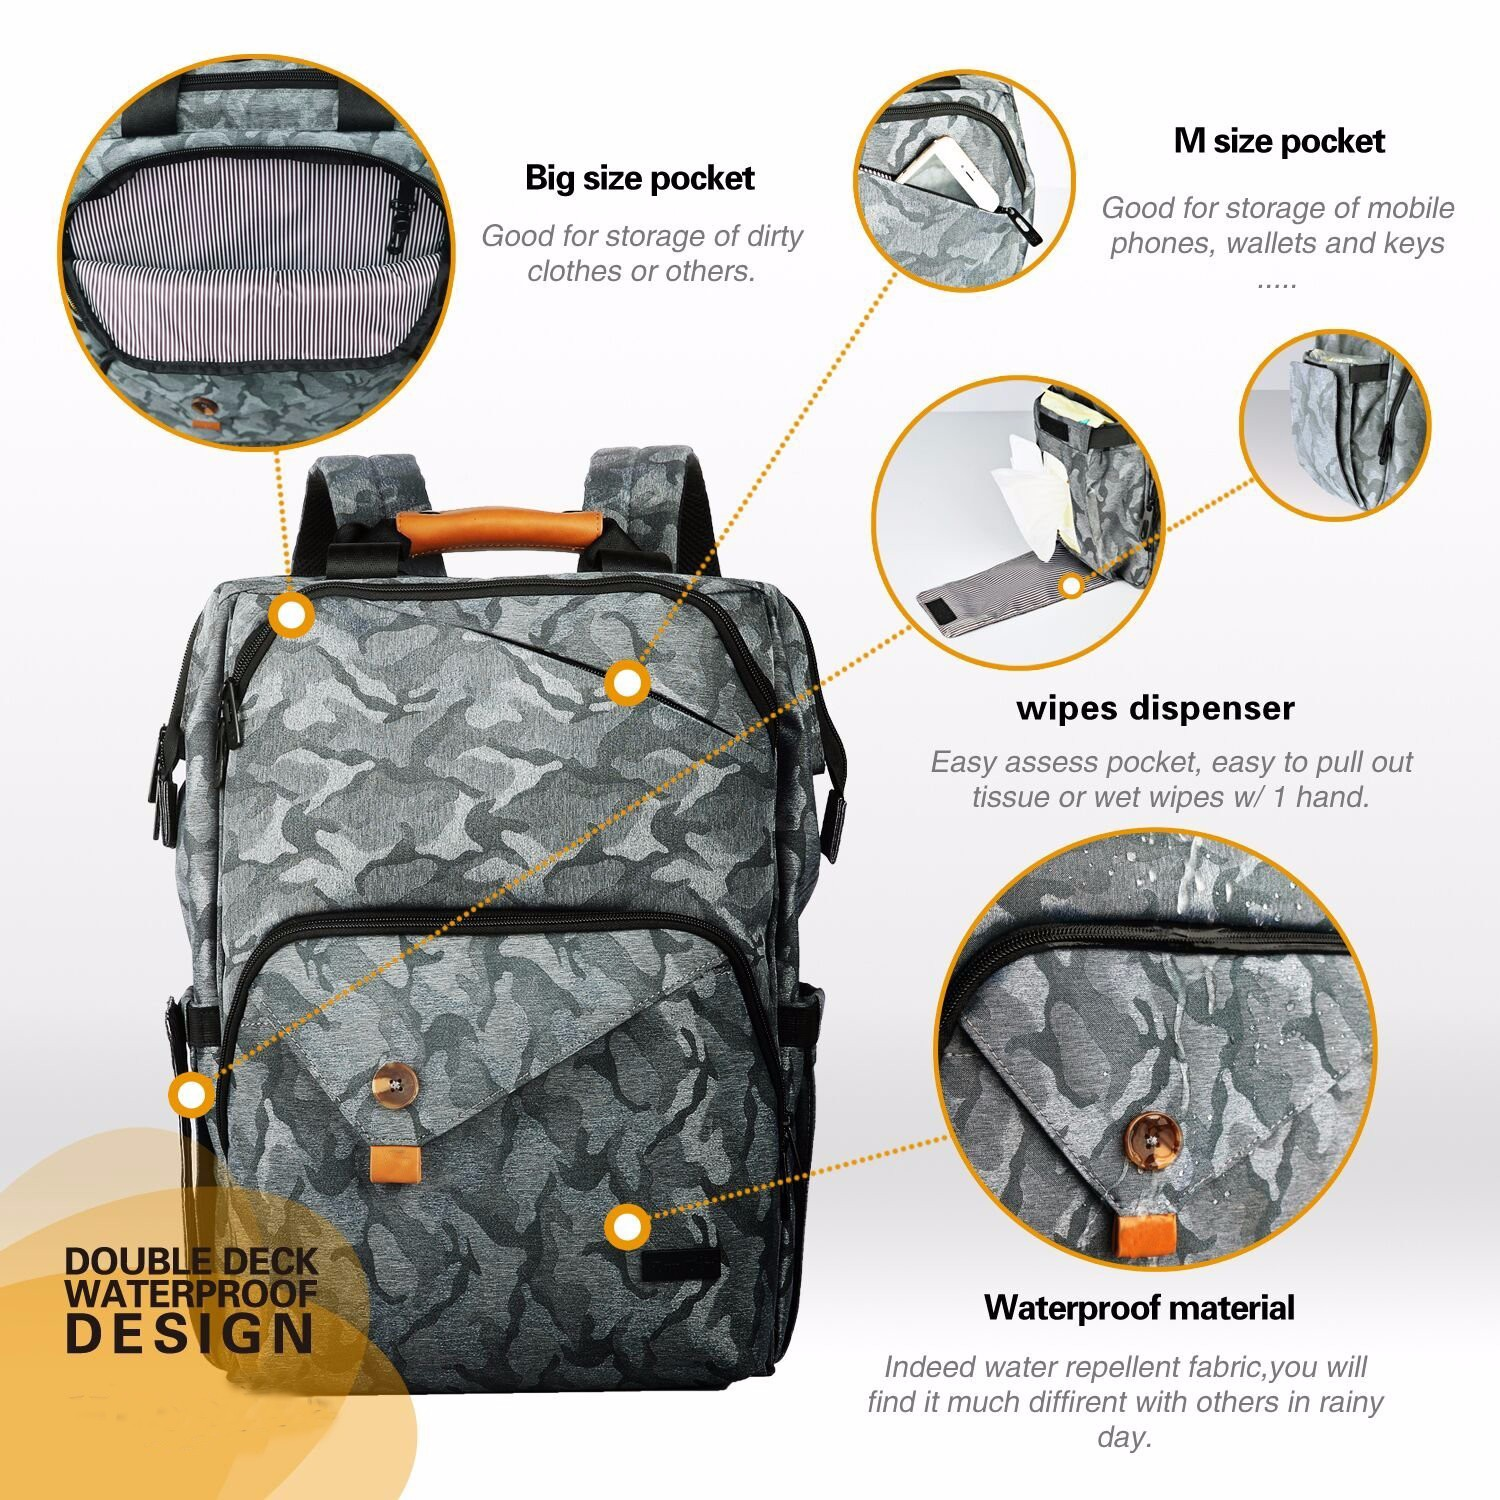 Waterproof Diaper Bag Manufacturers, Waterproof Diaper Bag Factory, Supply Waterproof Diaper Bag